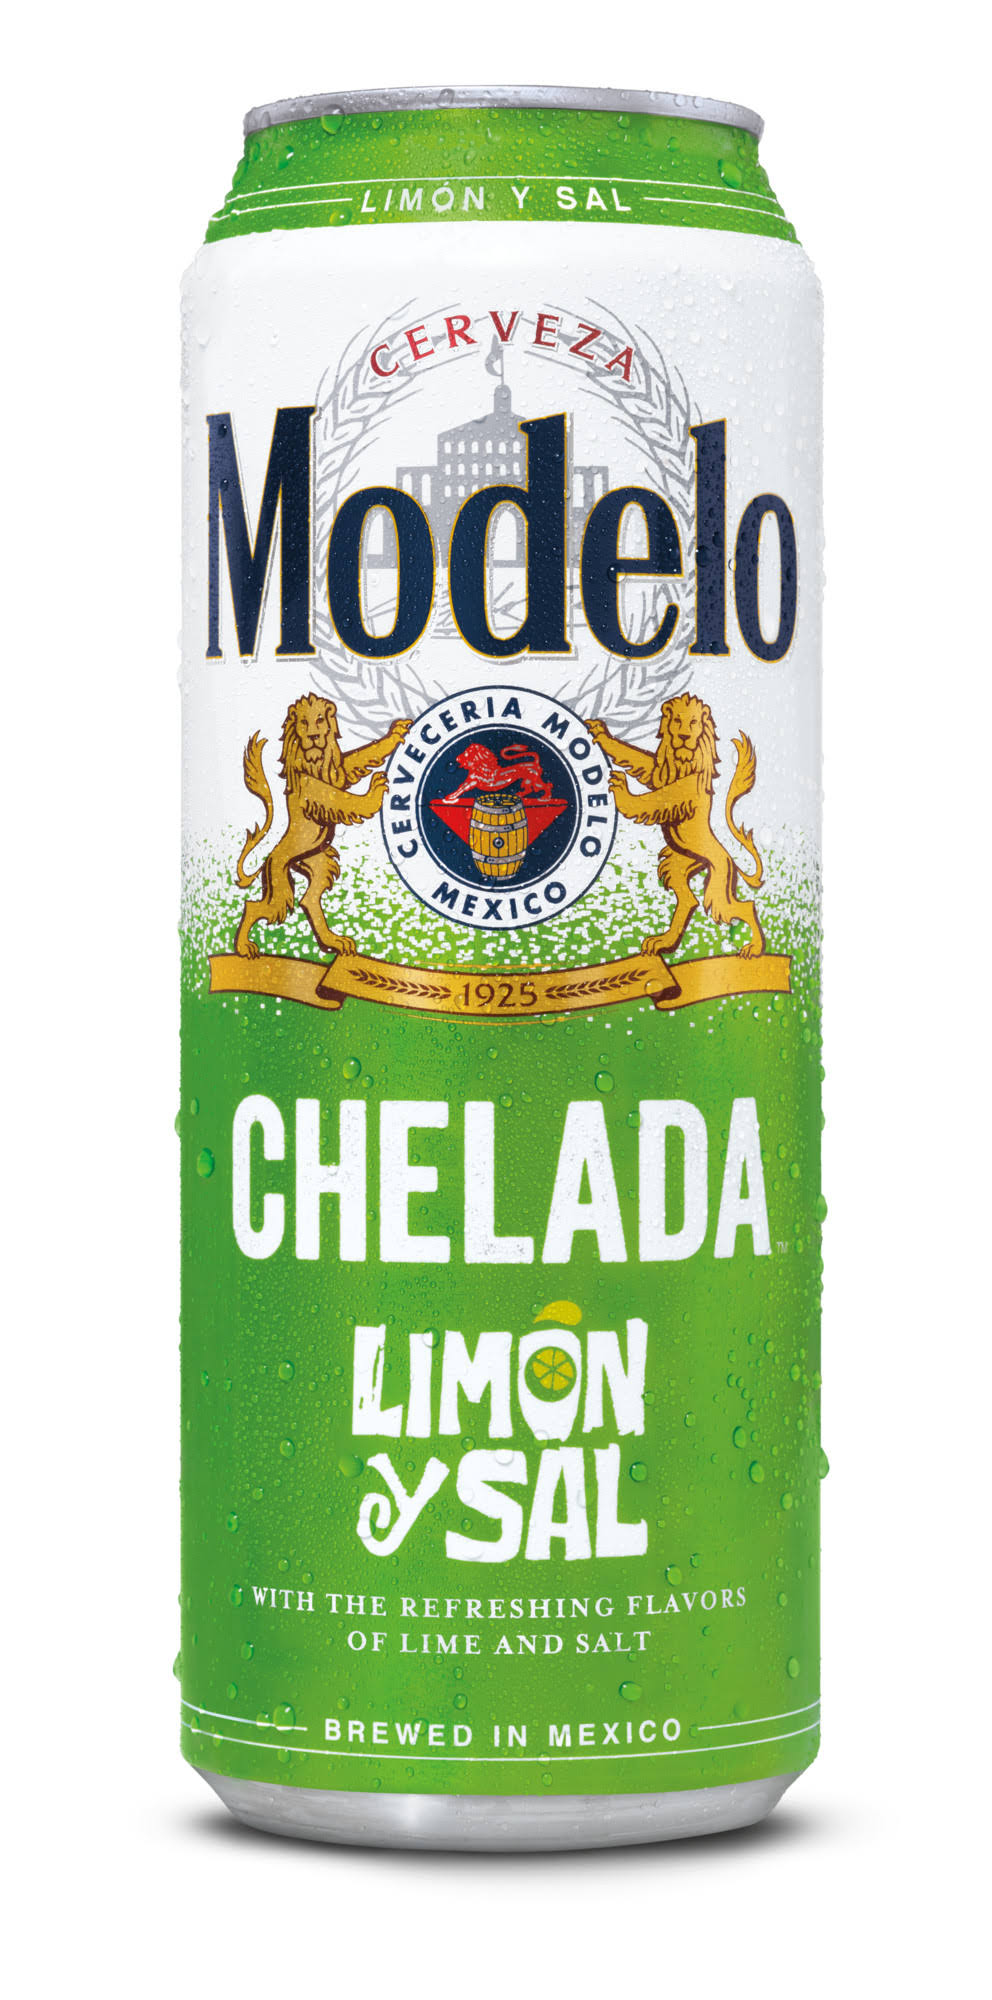 Modelo Chelada Limon Y Sal Flavored Mexican Import Beer